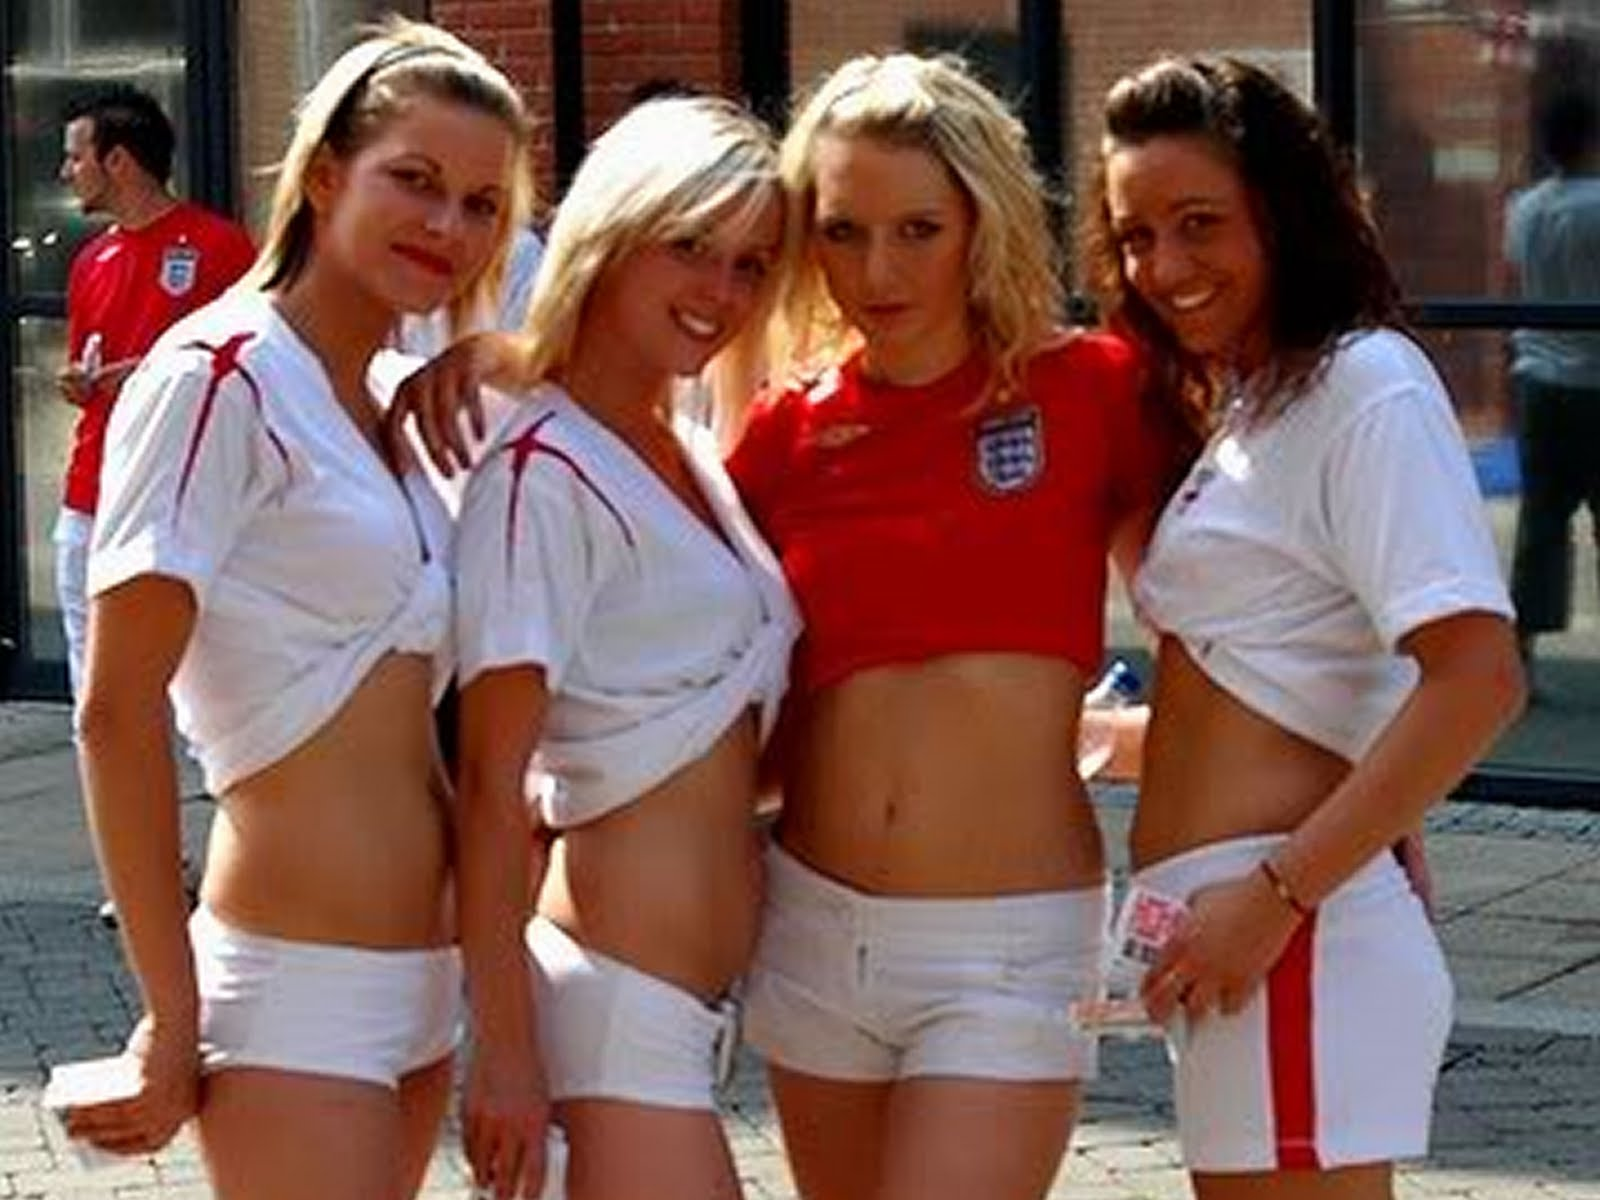 22 england 1 - hottest fans 2014 fifa world cup